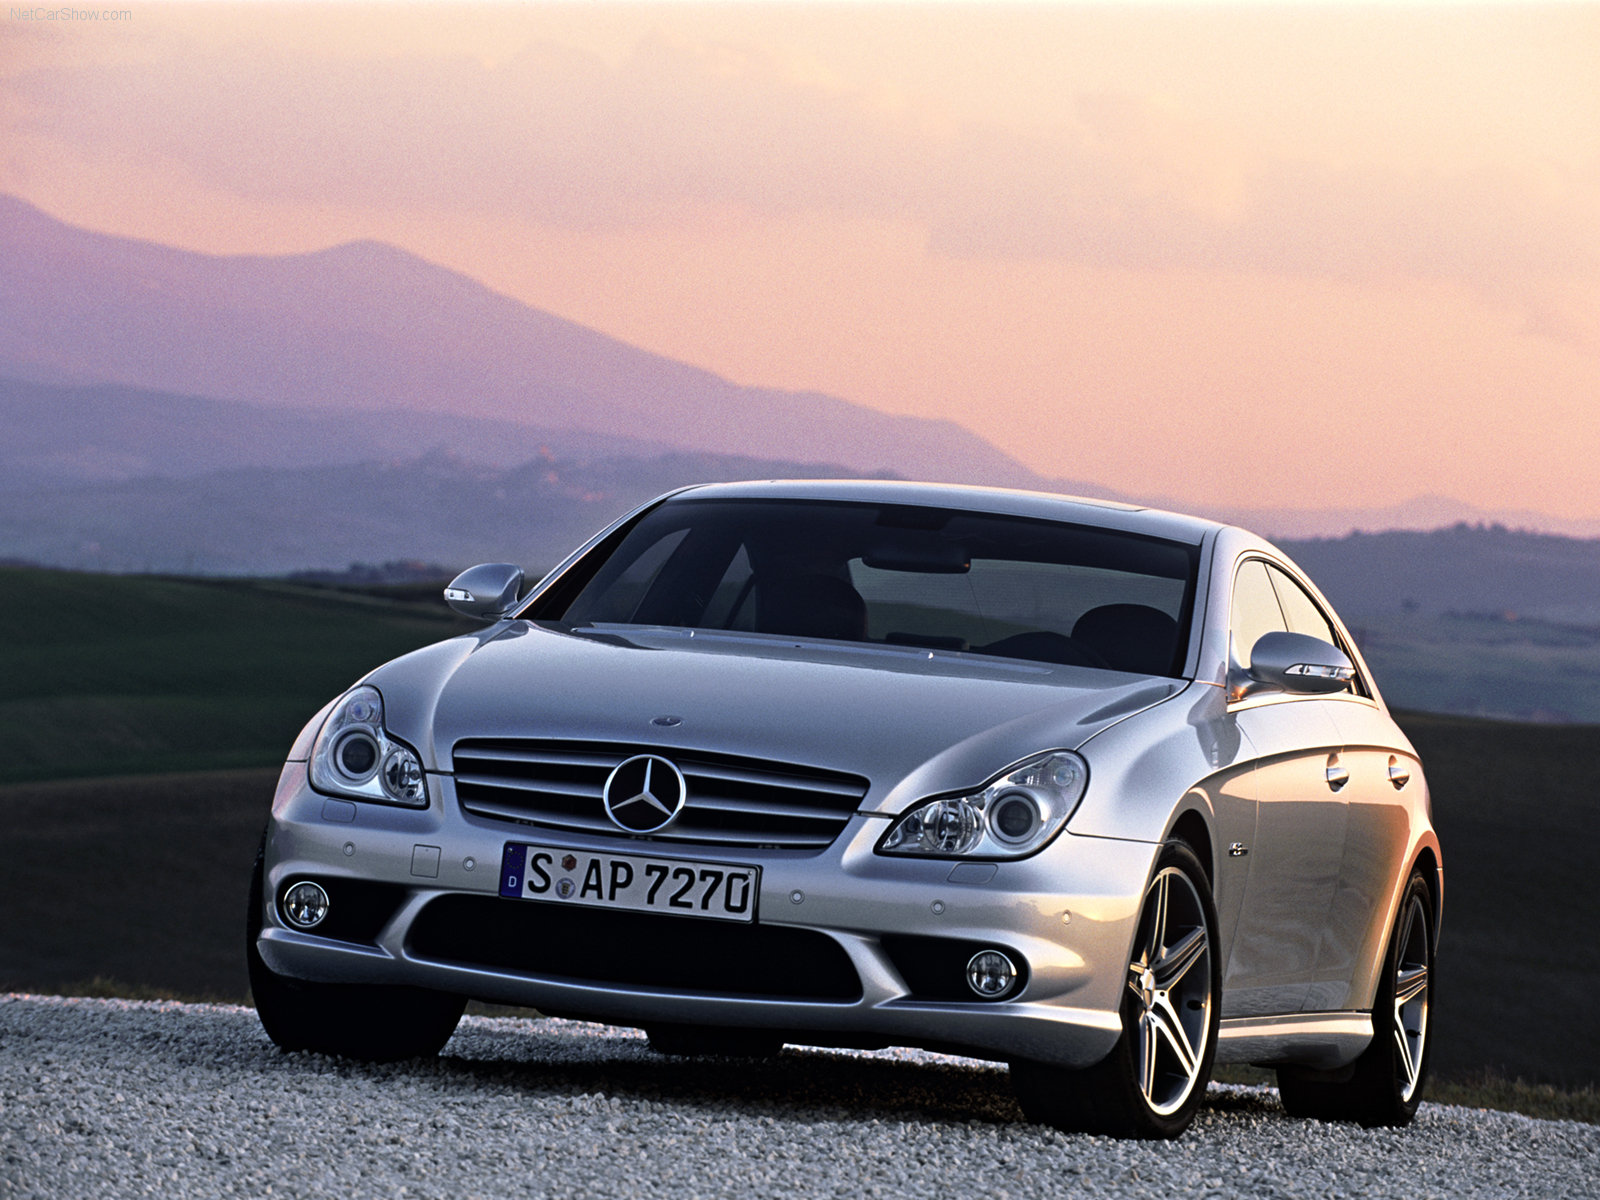 mercedes benz wallpaper hd mercedes benz wallpaper hd mercedes benz 1600x1200